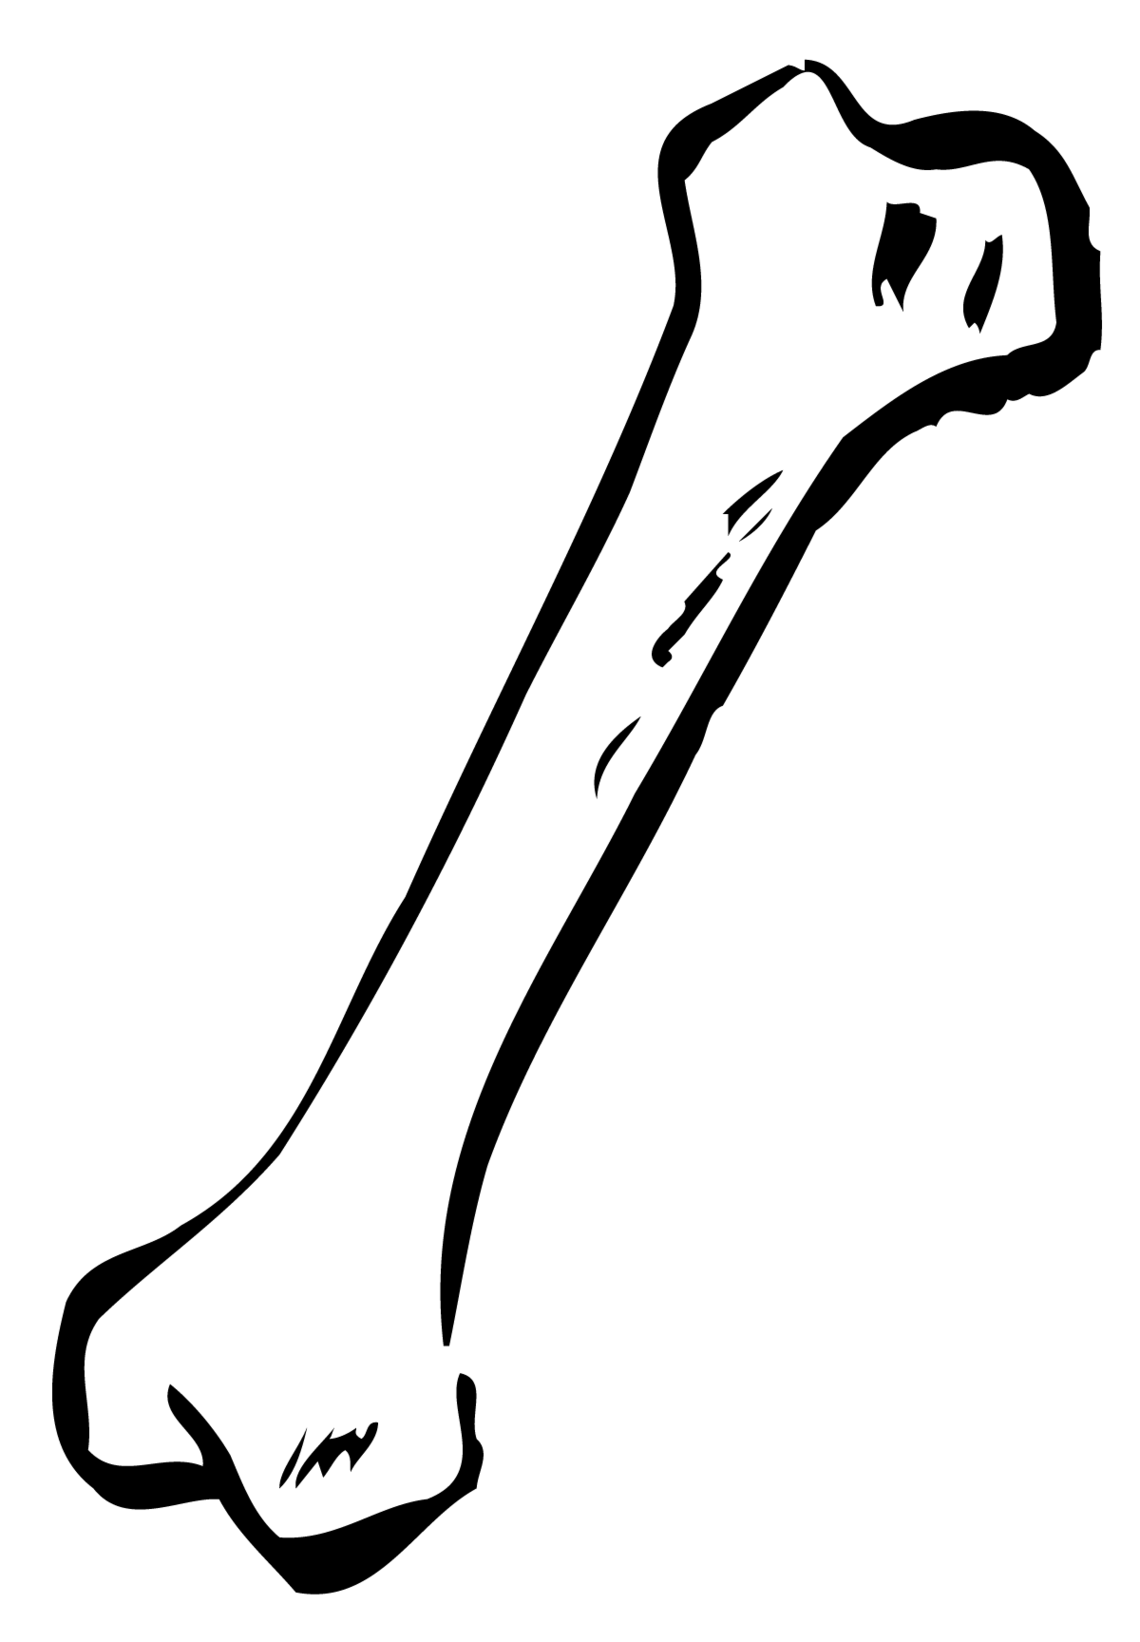 Bone Marrow Clipart.